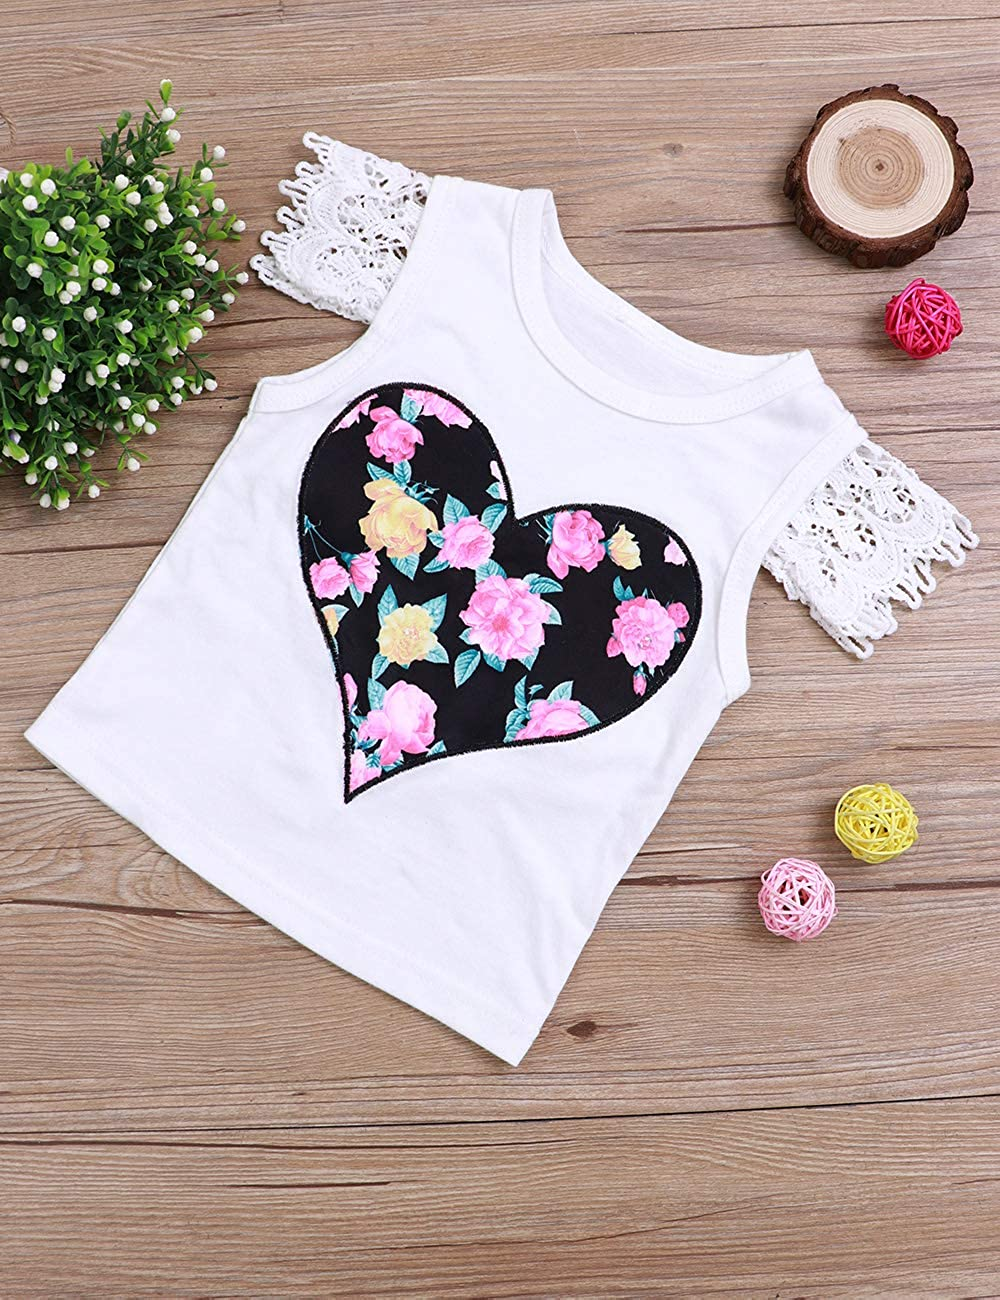 Newborn Baby Toddler Girl Clothes Printing Pants Shorts Romper Skirt Outfits Set